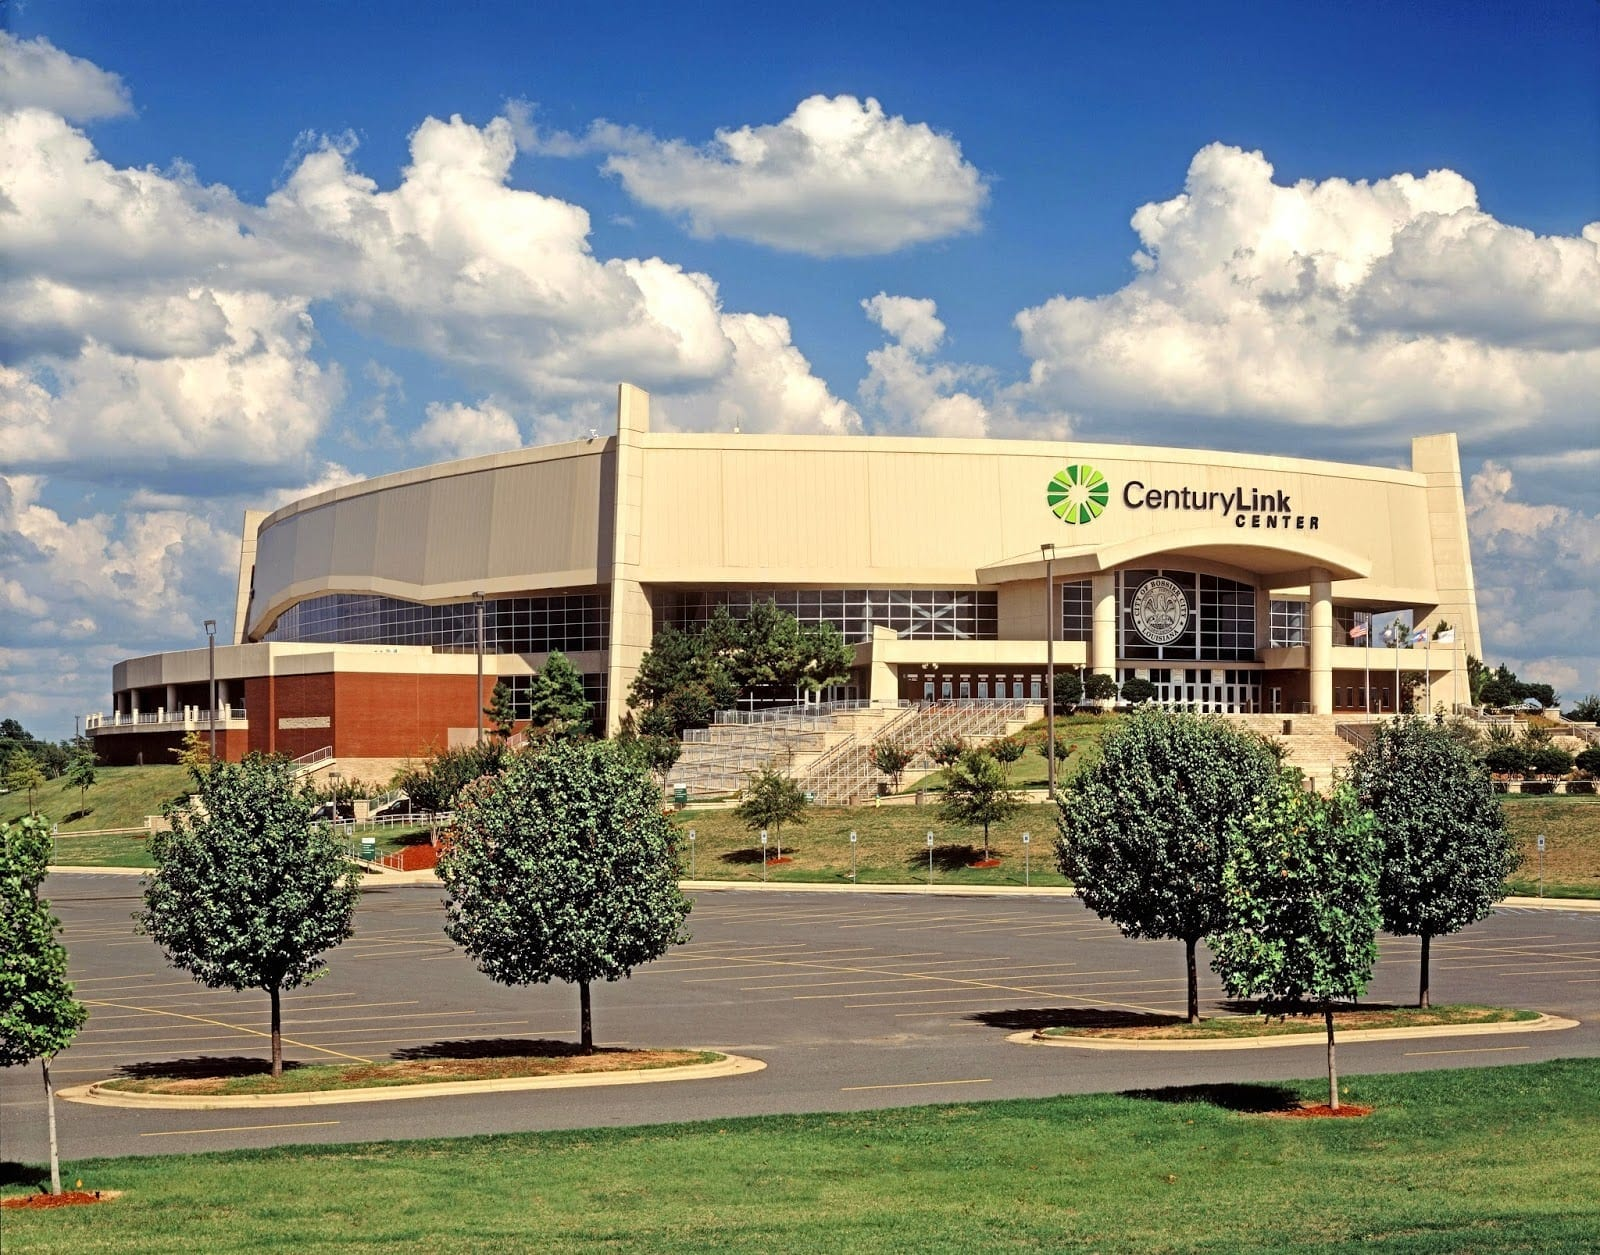 Centurytel Center Bossier City La Seating Chart | Elcho Table